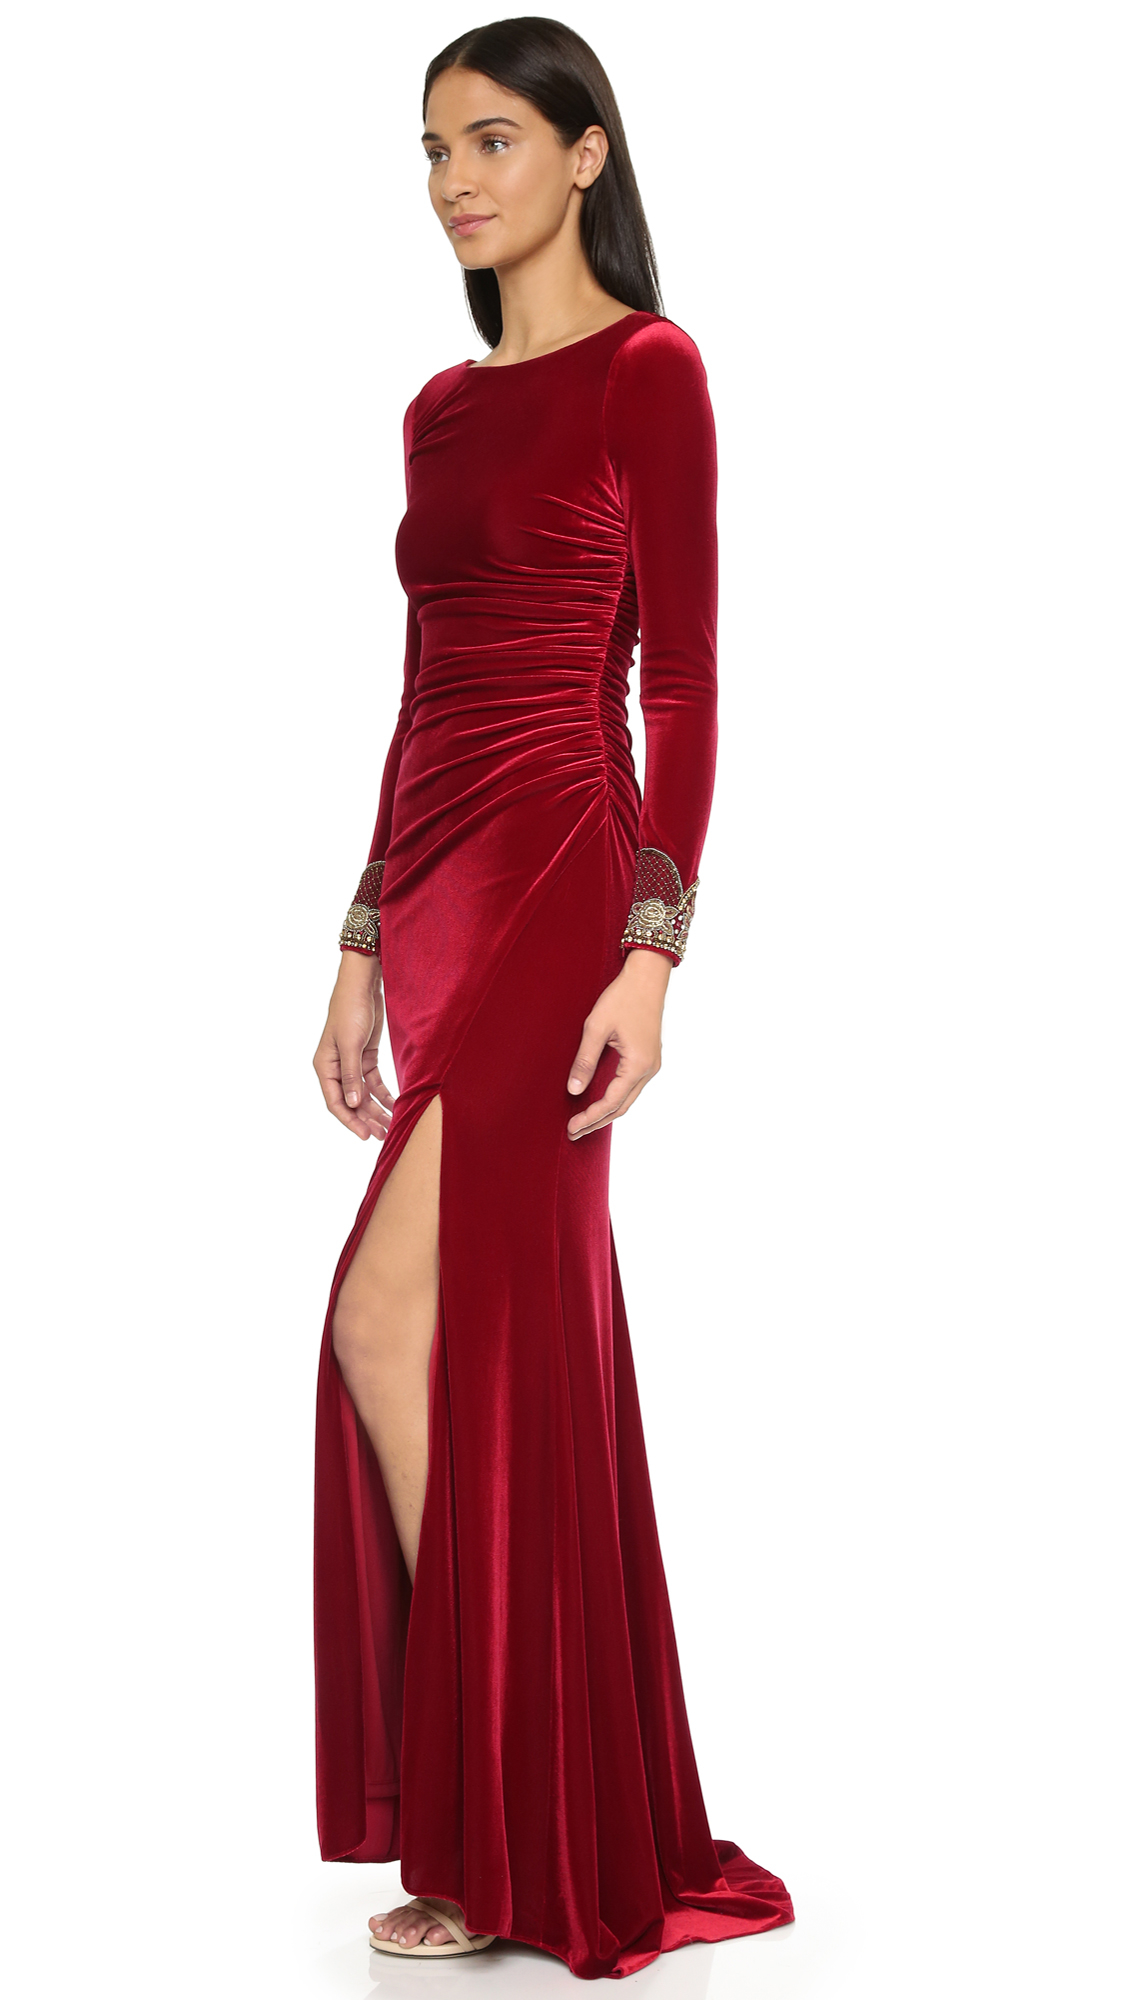 Badgley mischka Velvet Long Sleeve Dress - Crimson in Red | Lyst